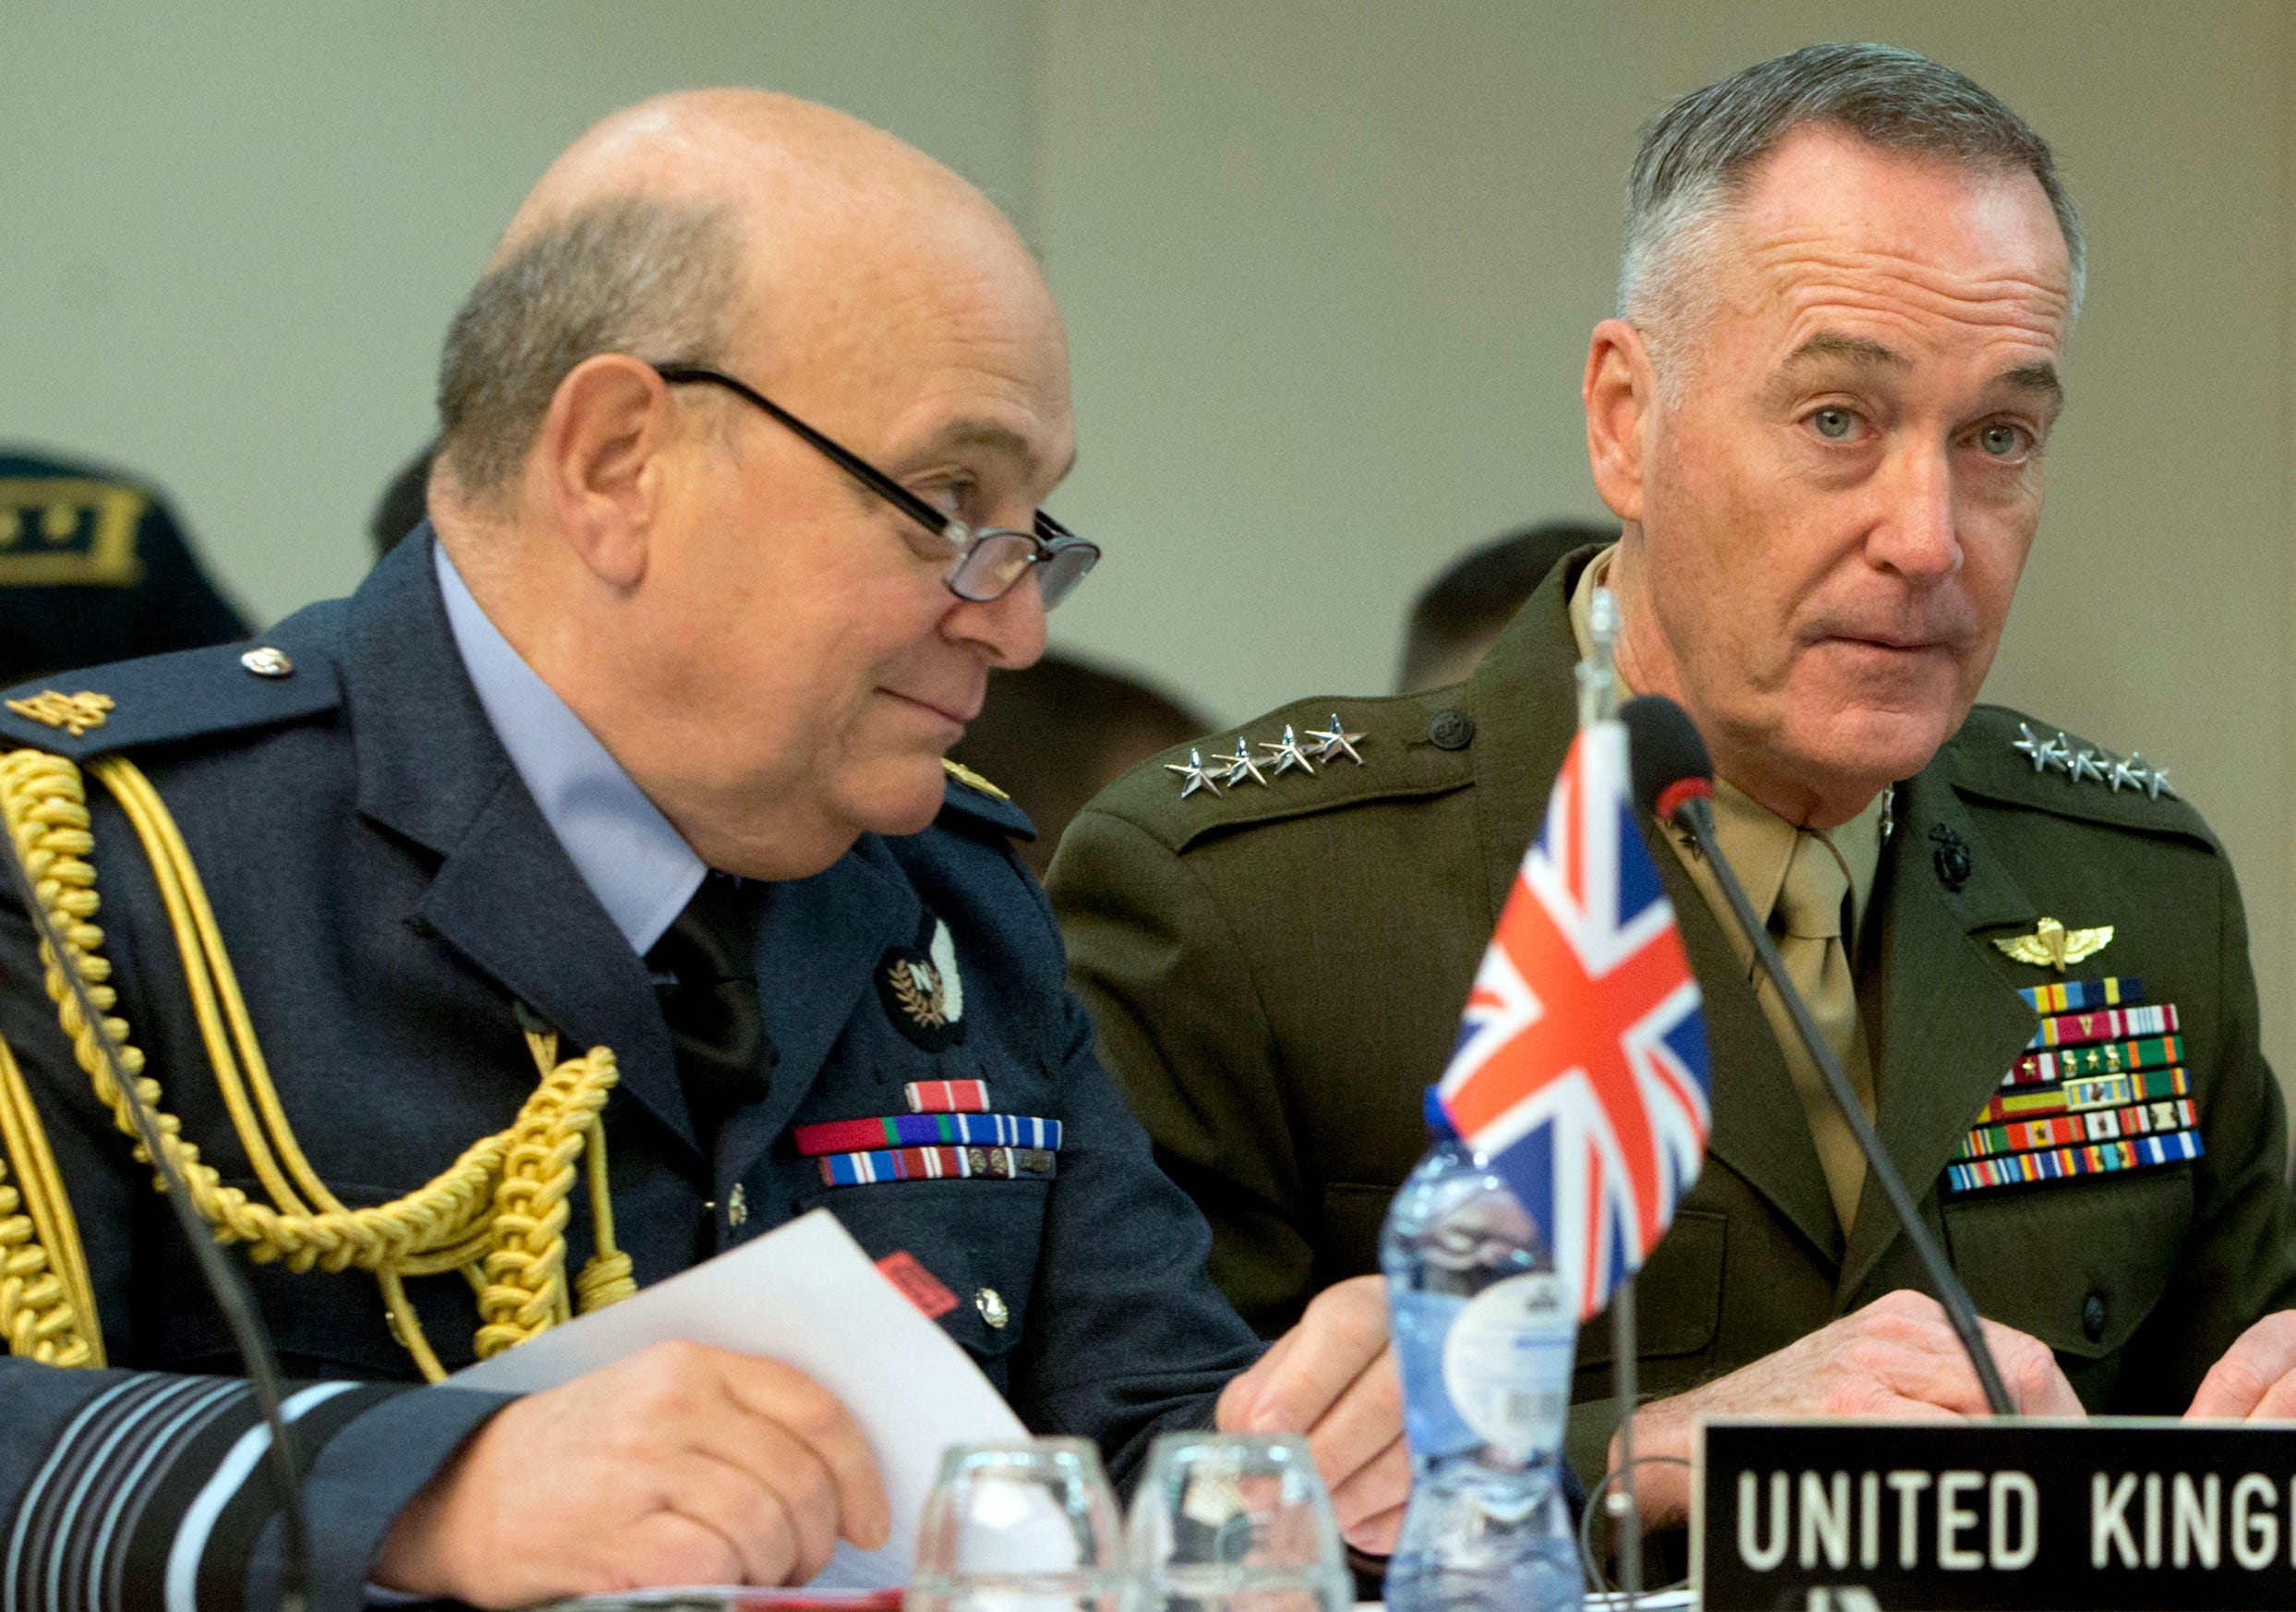 636306651906912701-AP-Belgium-NATO-Defense NATO in Afghanistan: Marine Gen. Joseph Dunford says alliance should move quickly to deploy forces